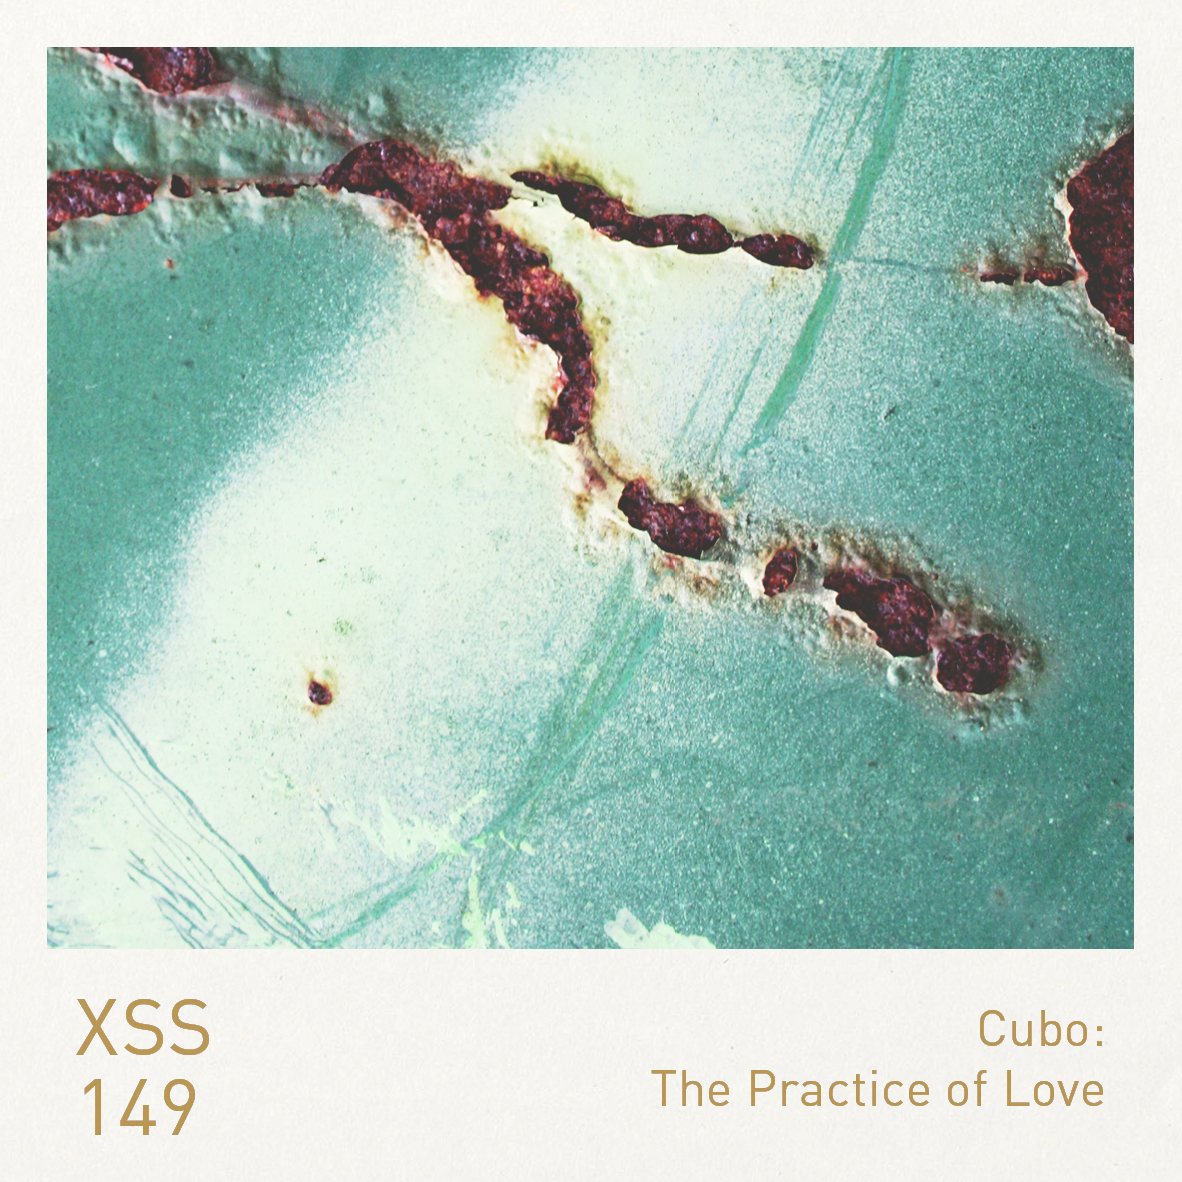 XSS149 | Cubo | The Practice of Love